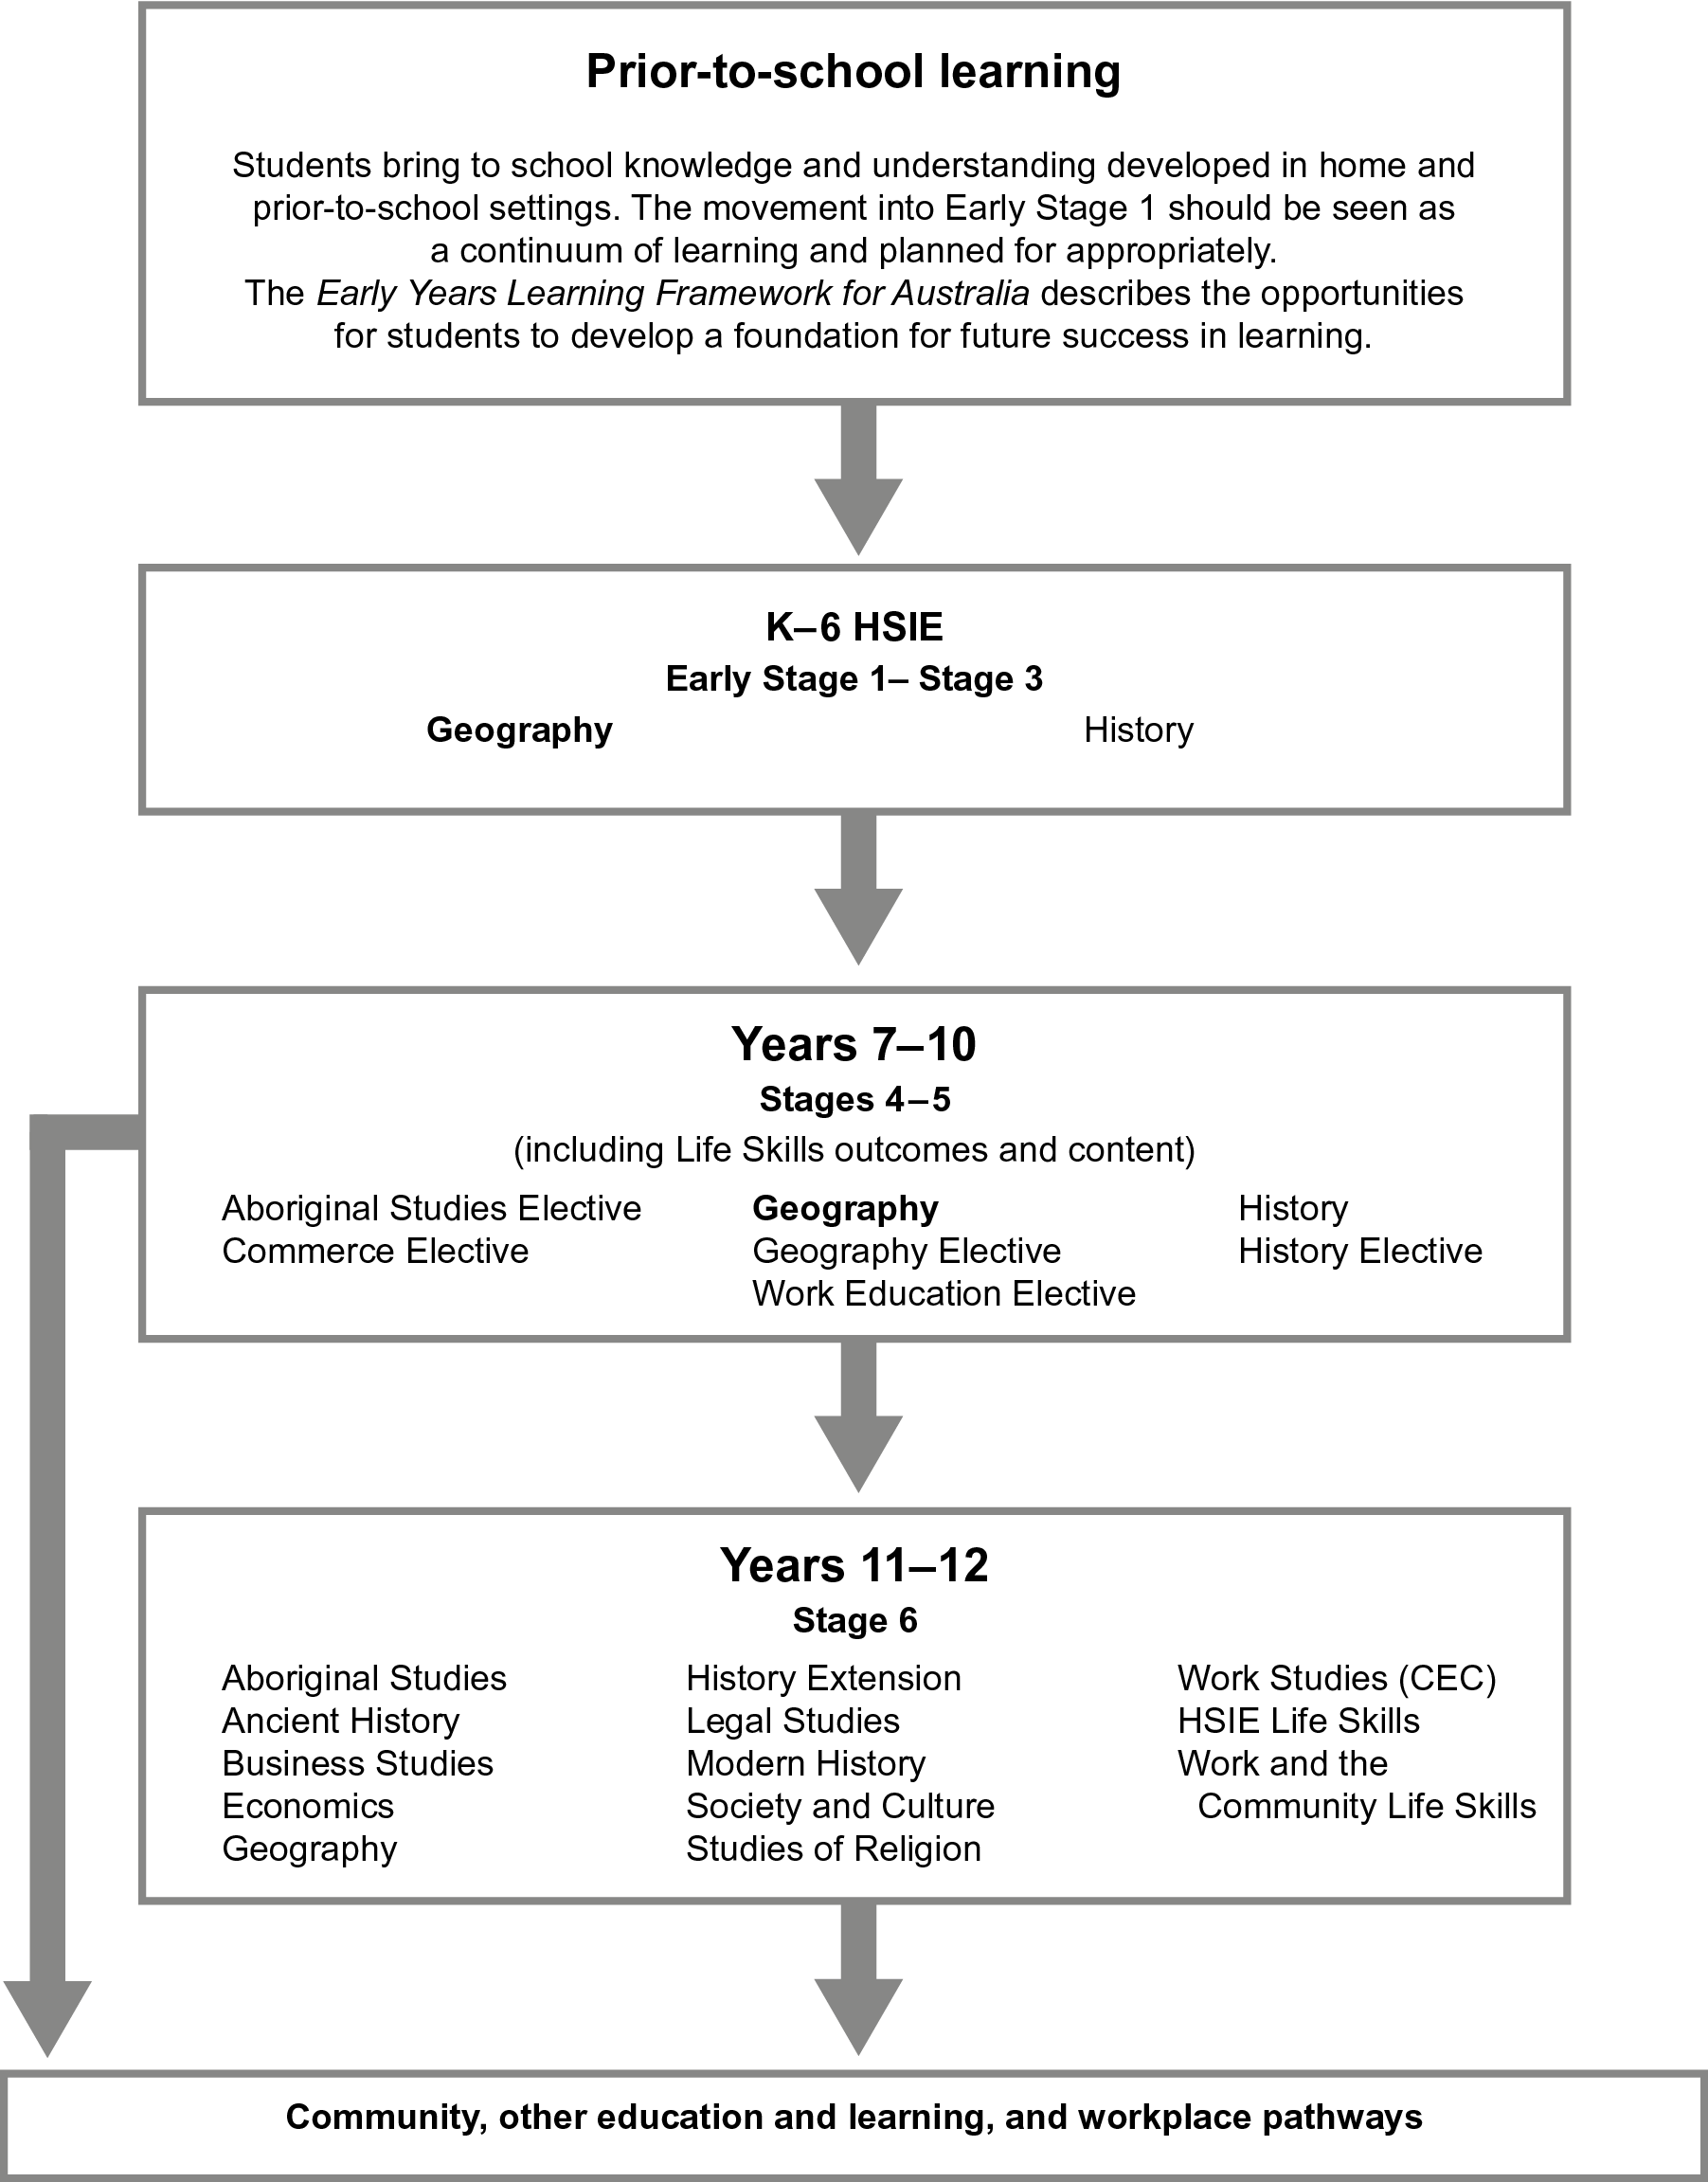 This diagram shows the relationship between the Geography K–10 syllabus and the stages of learning before and after it in the K-12 curriculum.